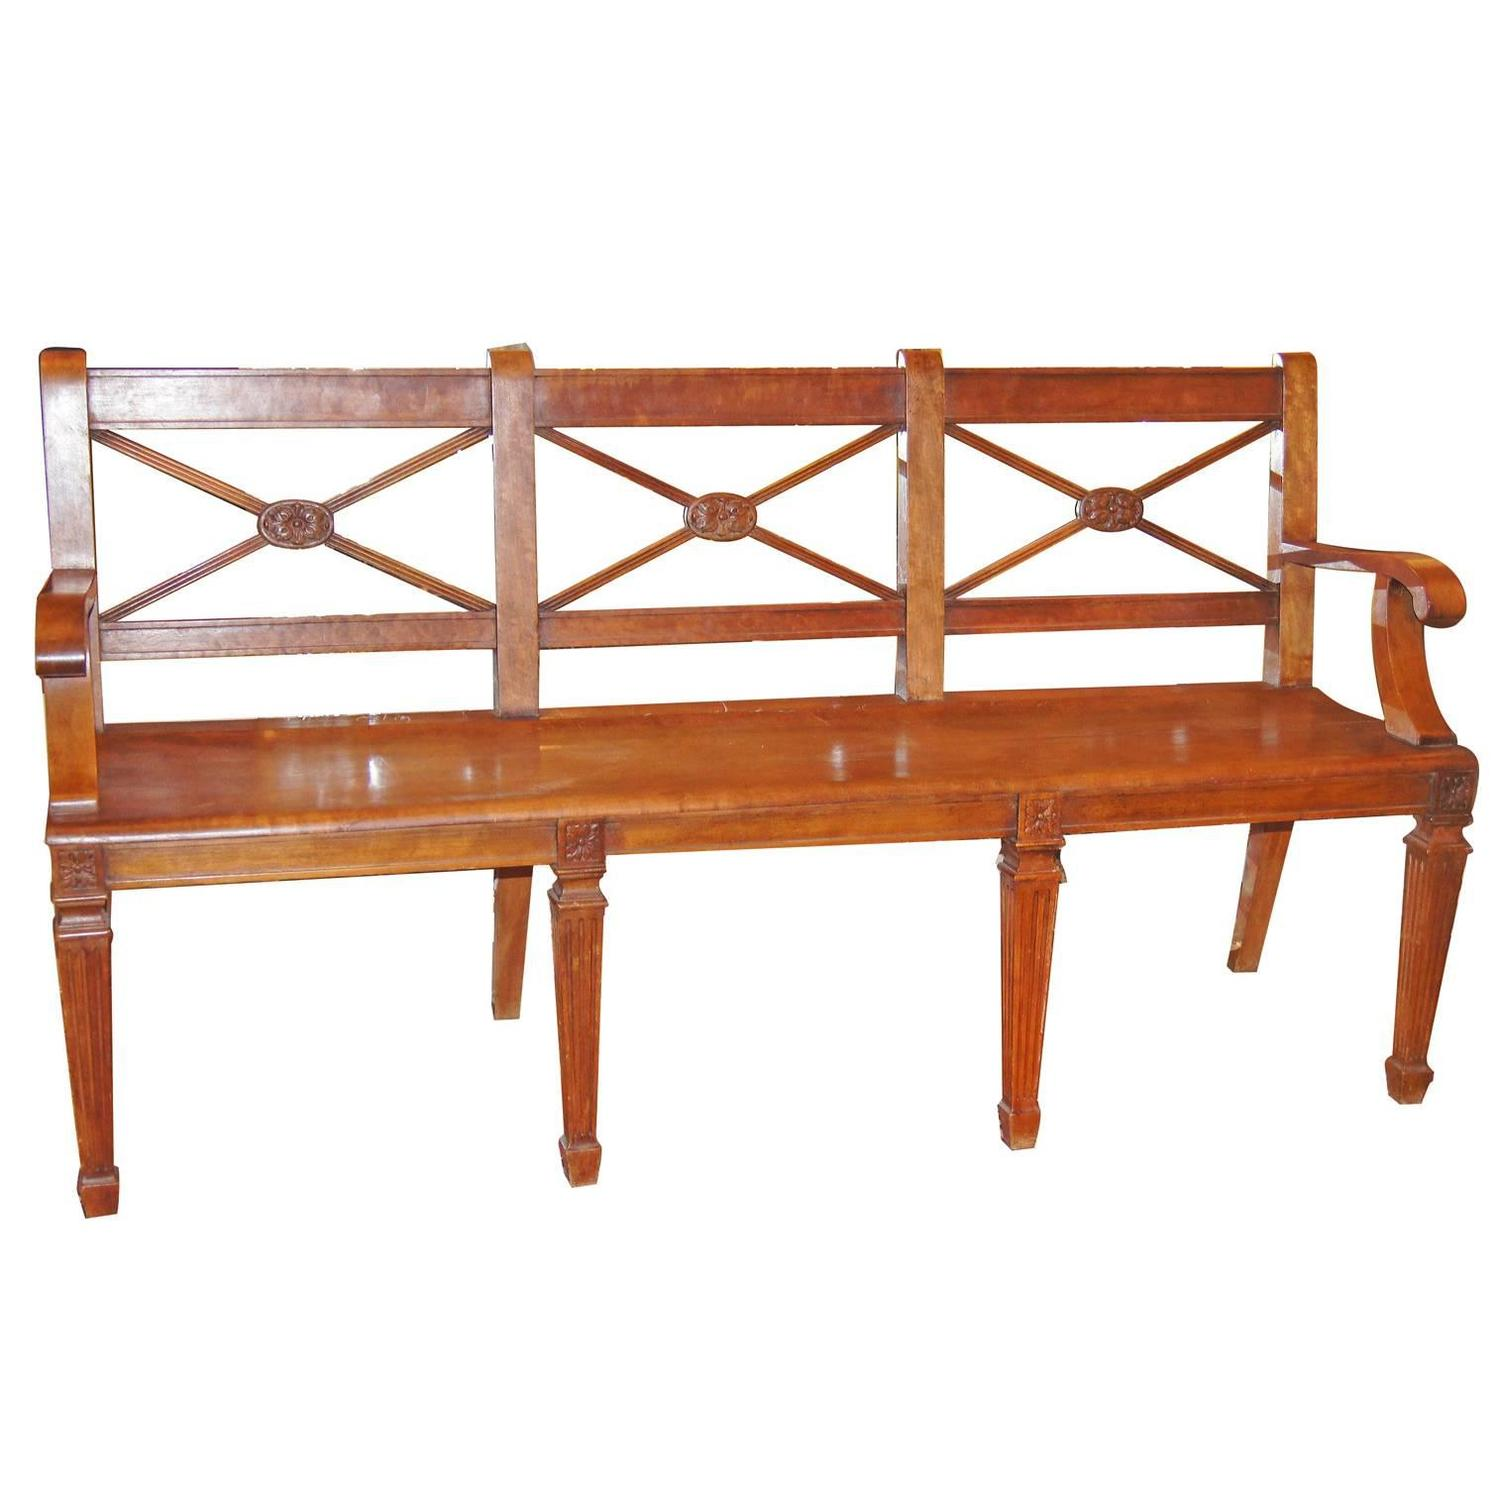 neoclassic style bench for sale at 1stdibs